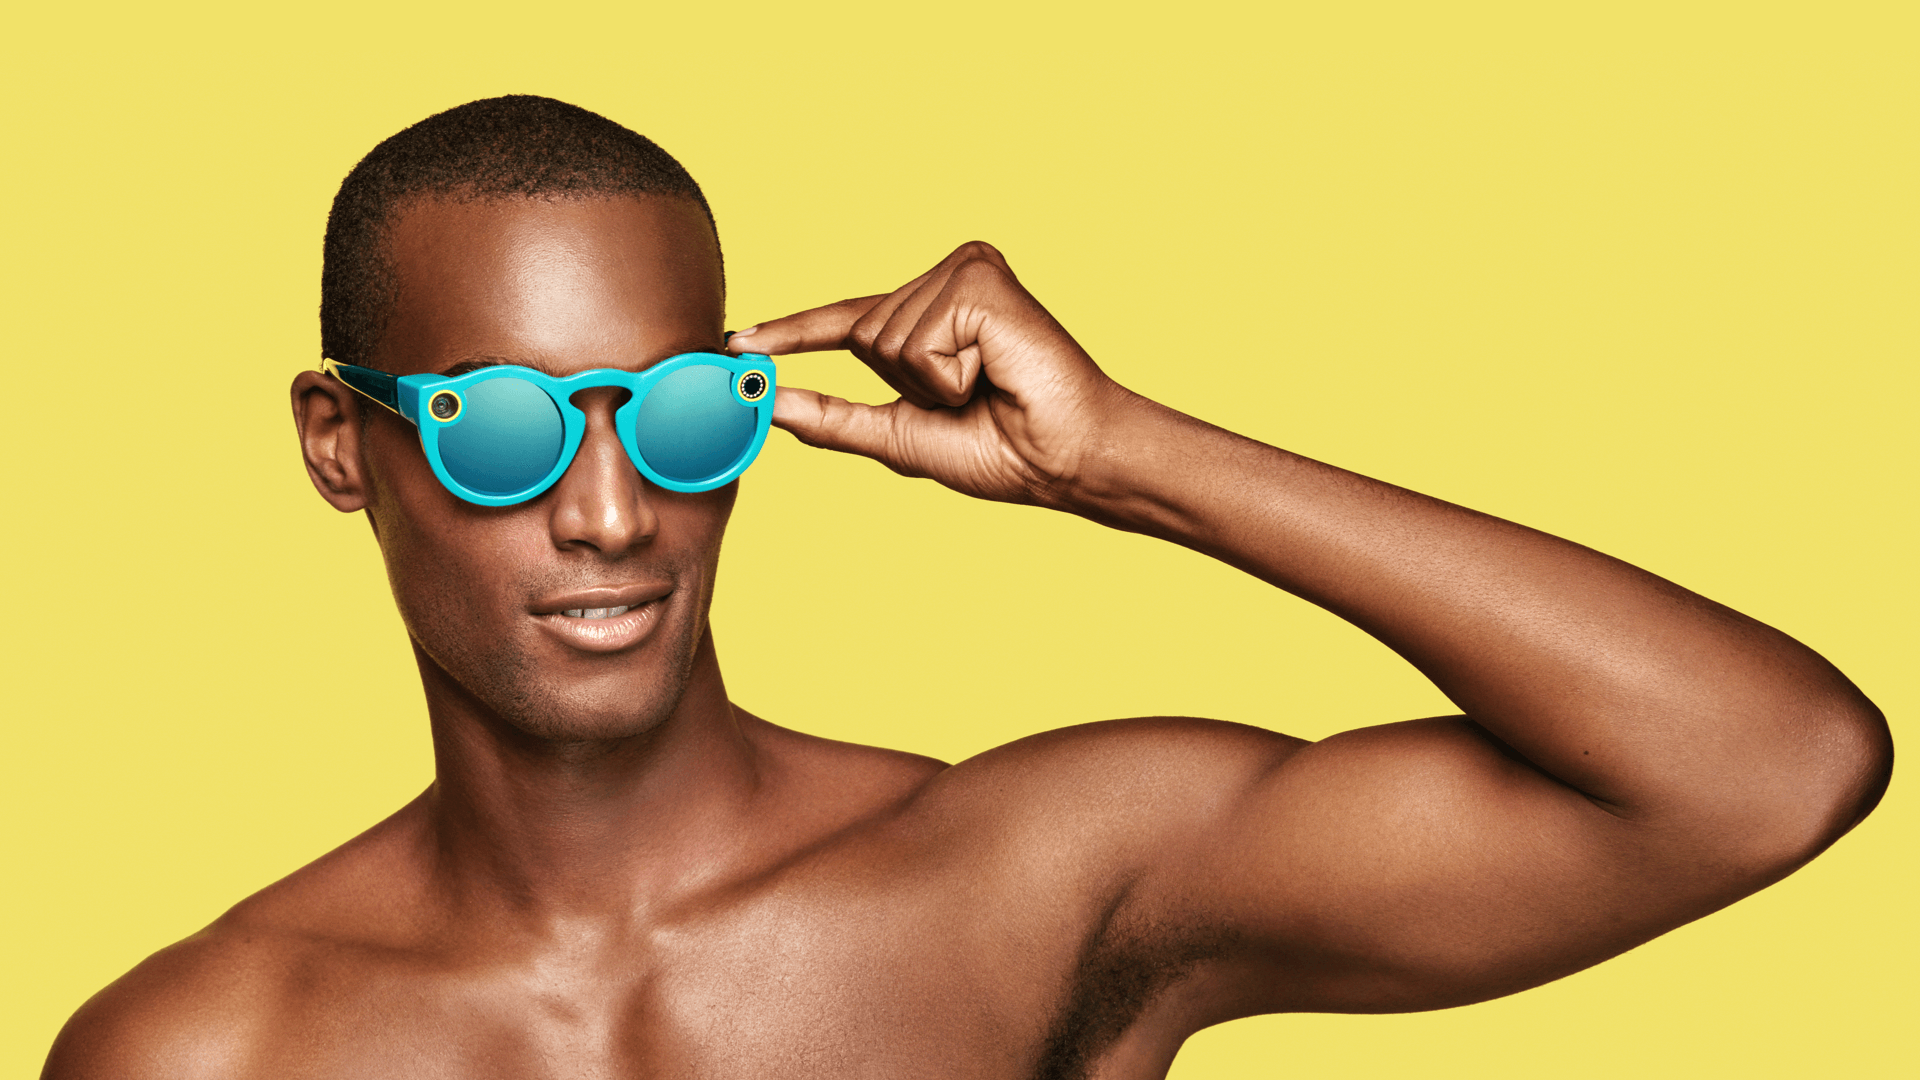 Spectacles by Snap Inc.